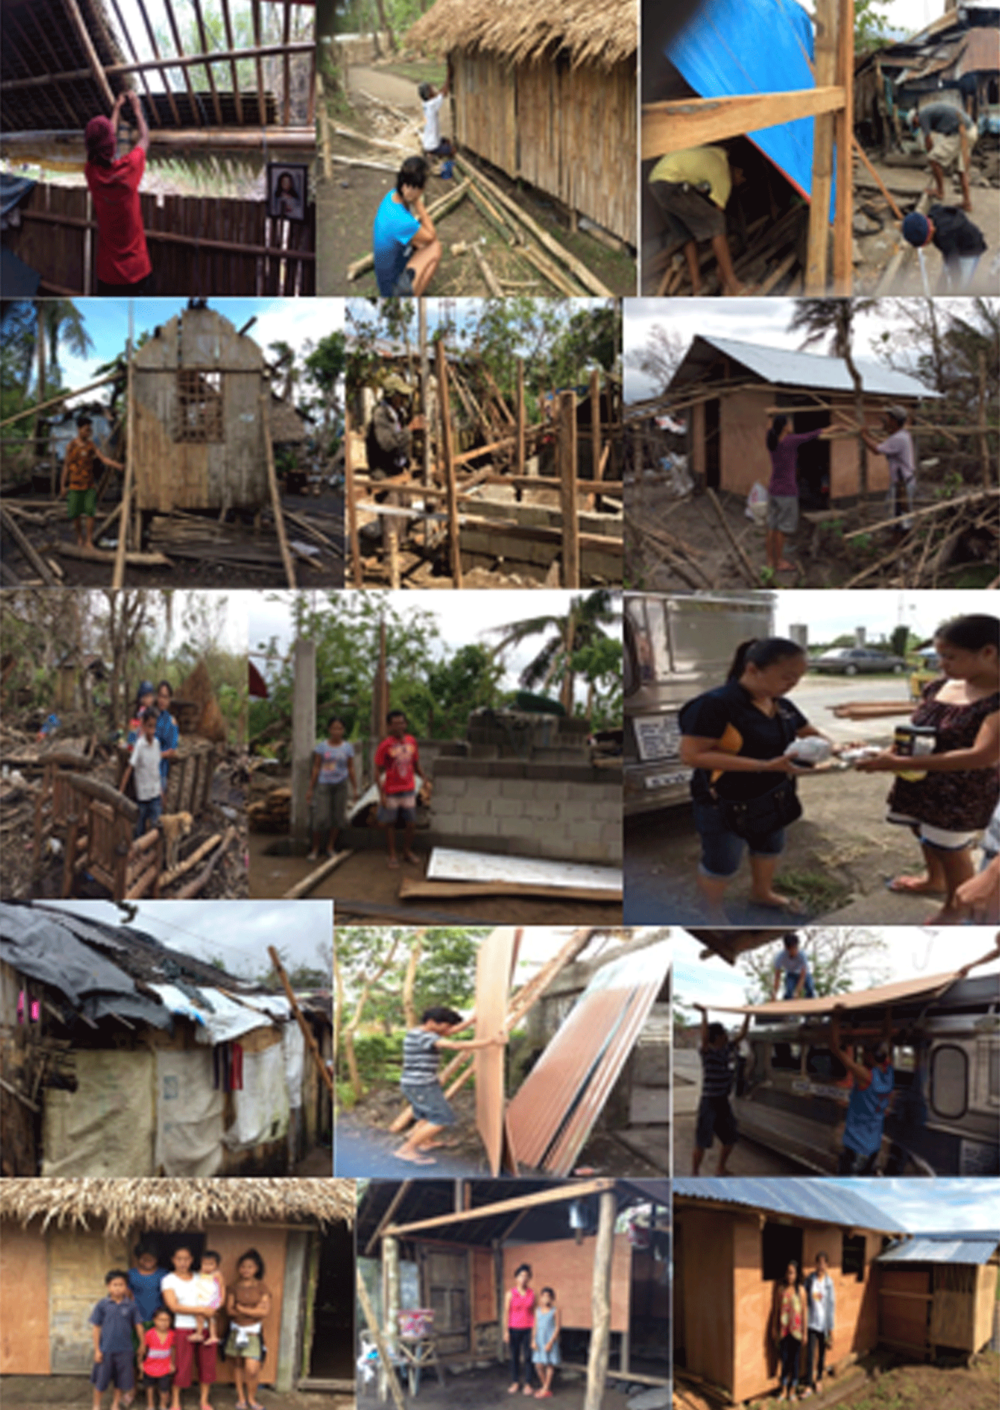 The progression of homes being restored to living conditions. Neighbors, family and friends all lent a helping hand in rebuilding their community.